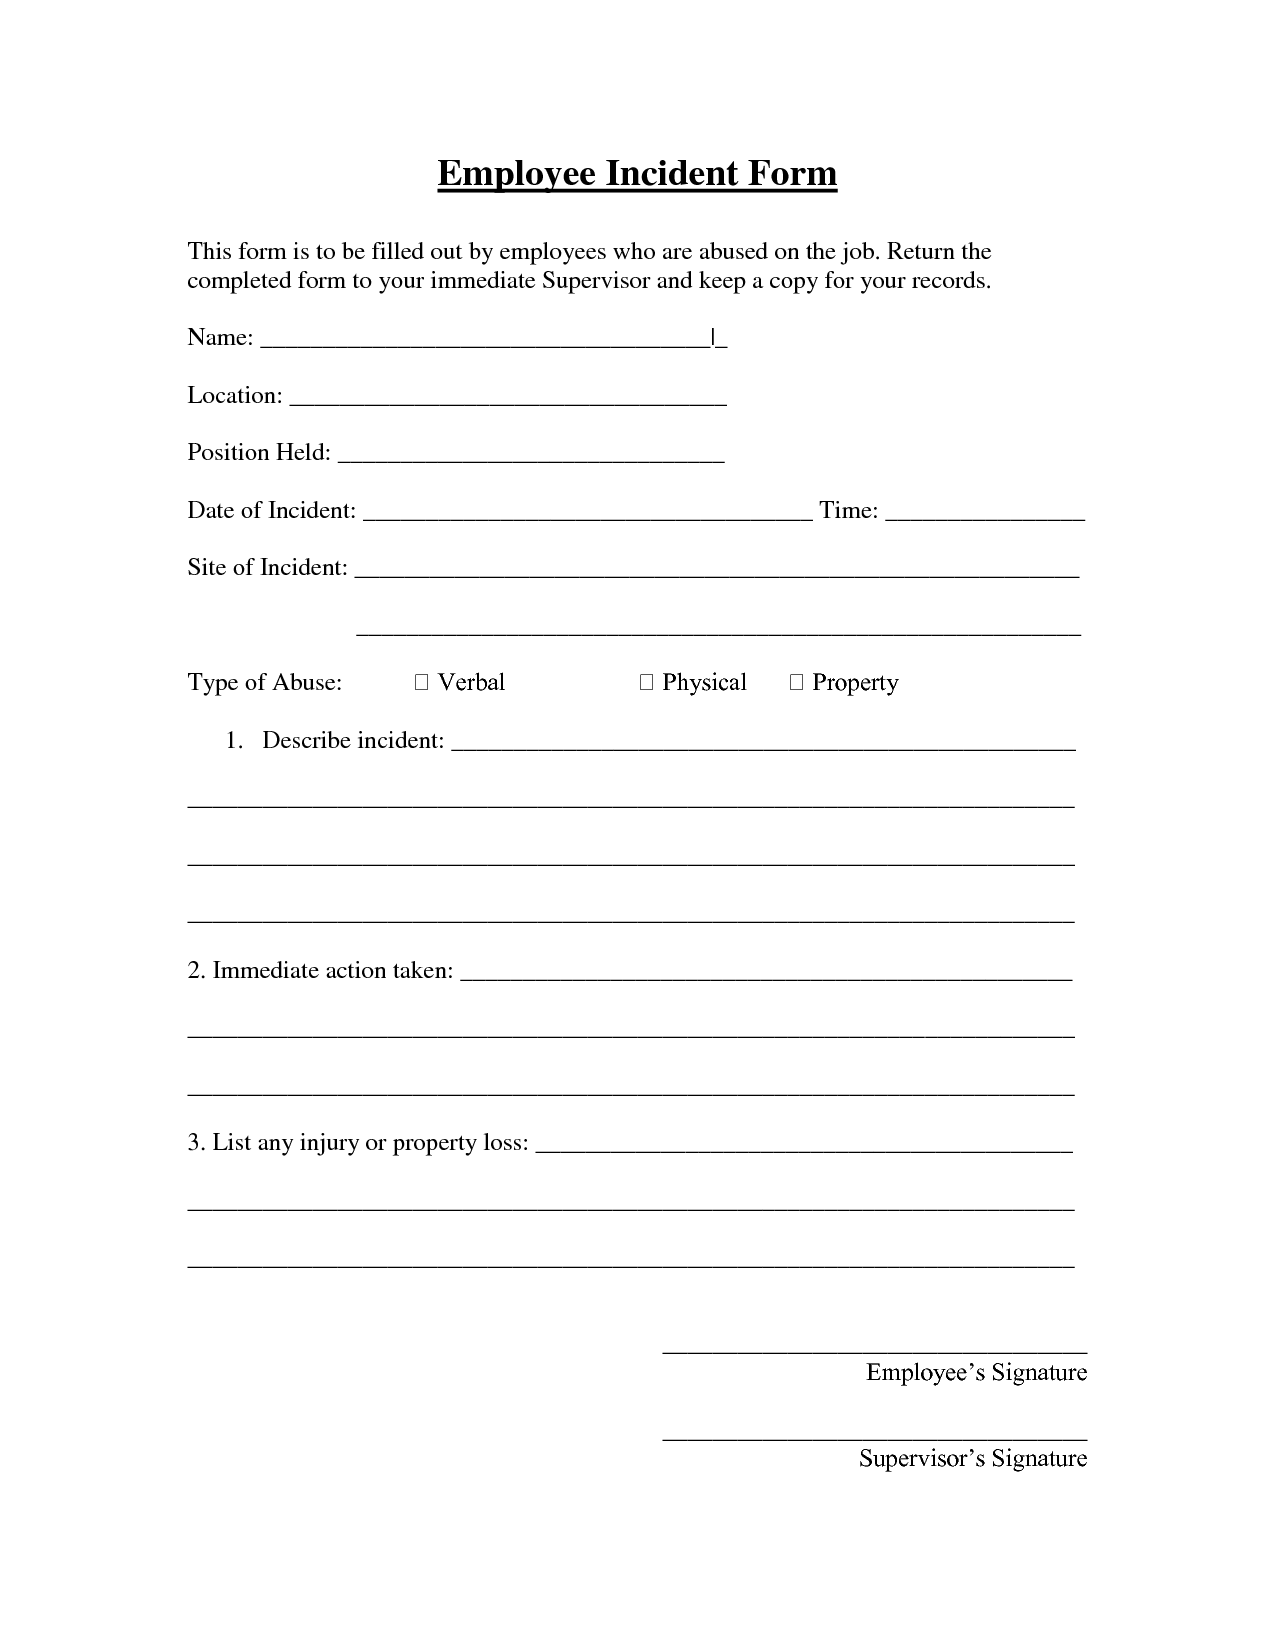 samples of incident report forms   Tier.brianhenry.co